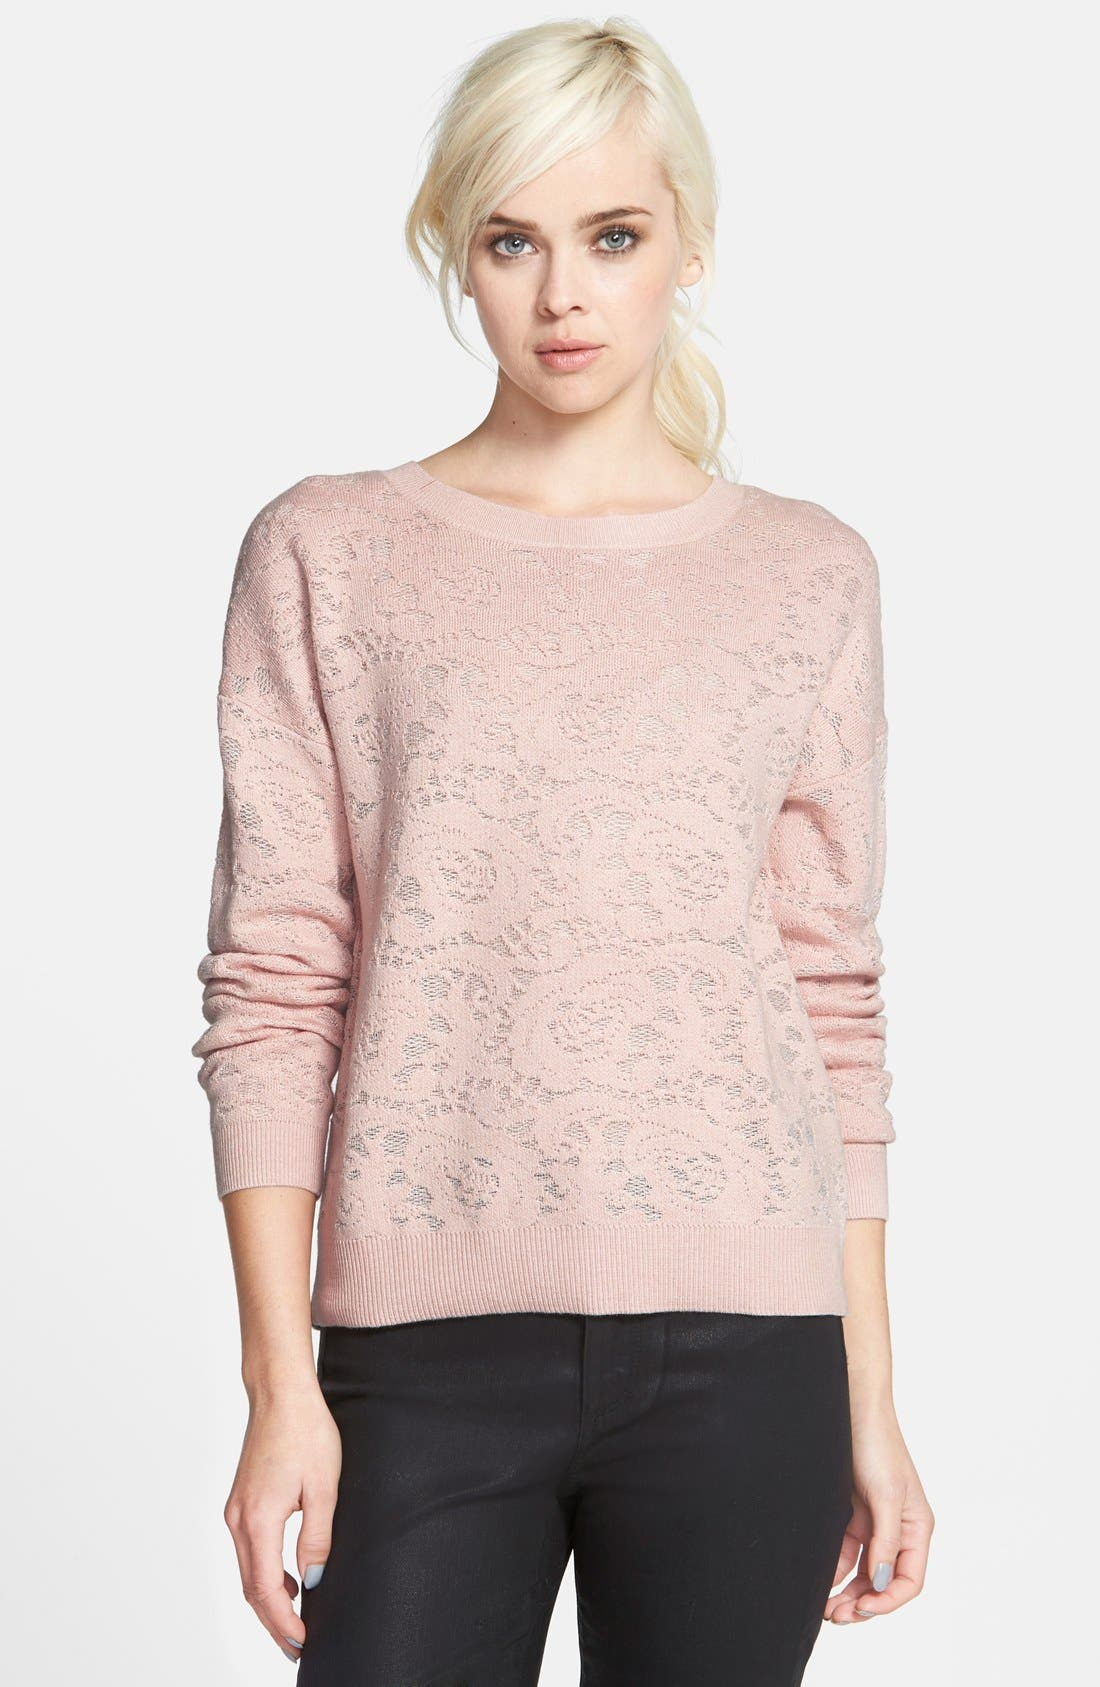 Alternate Image 1 Selected - Chelsea28 Floral Jacquard Sweater